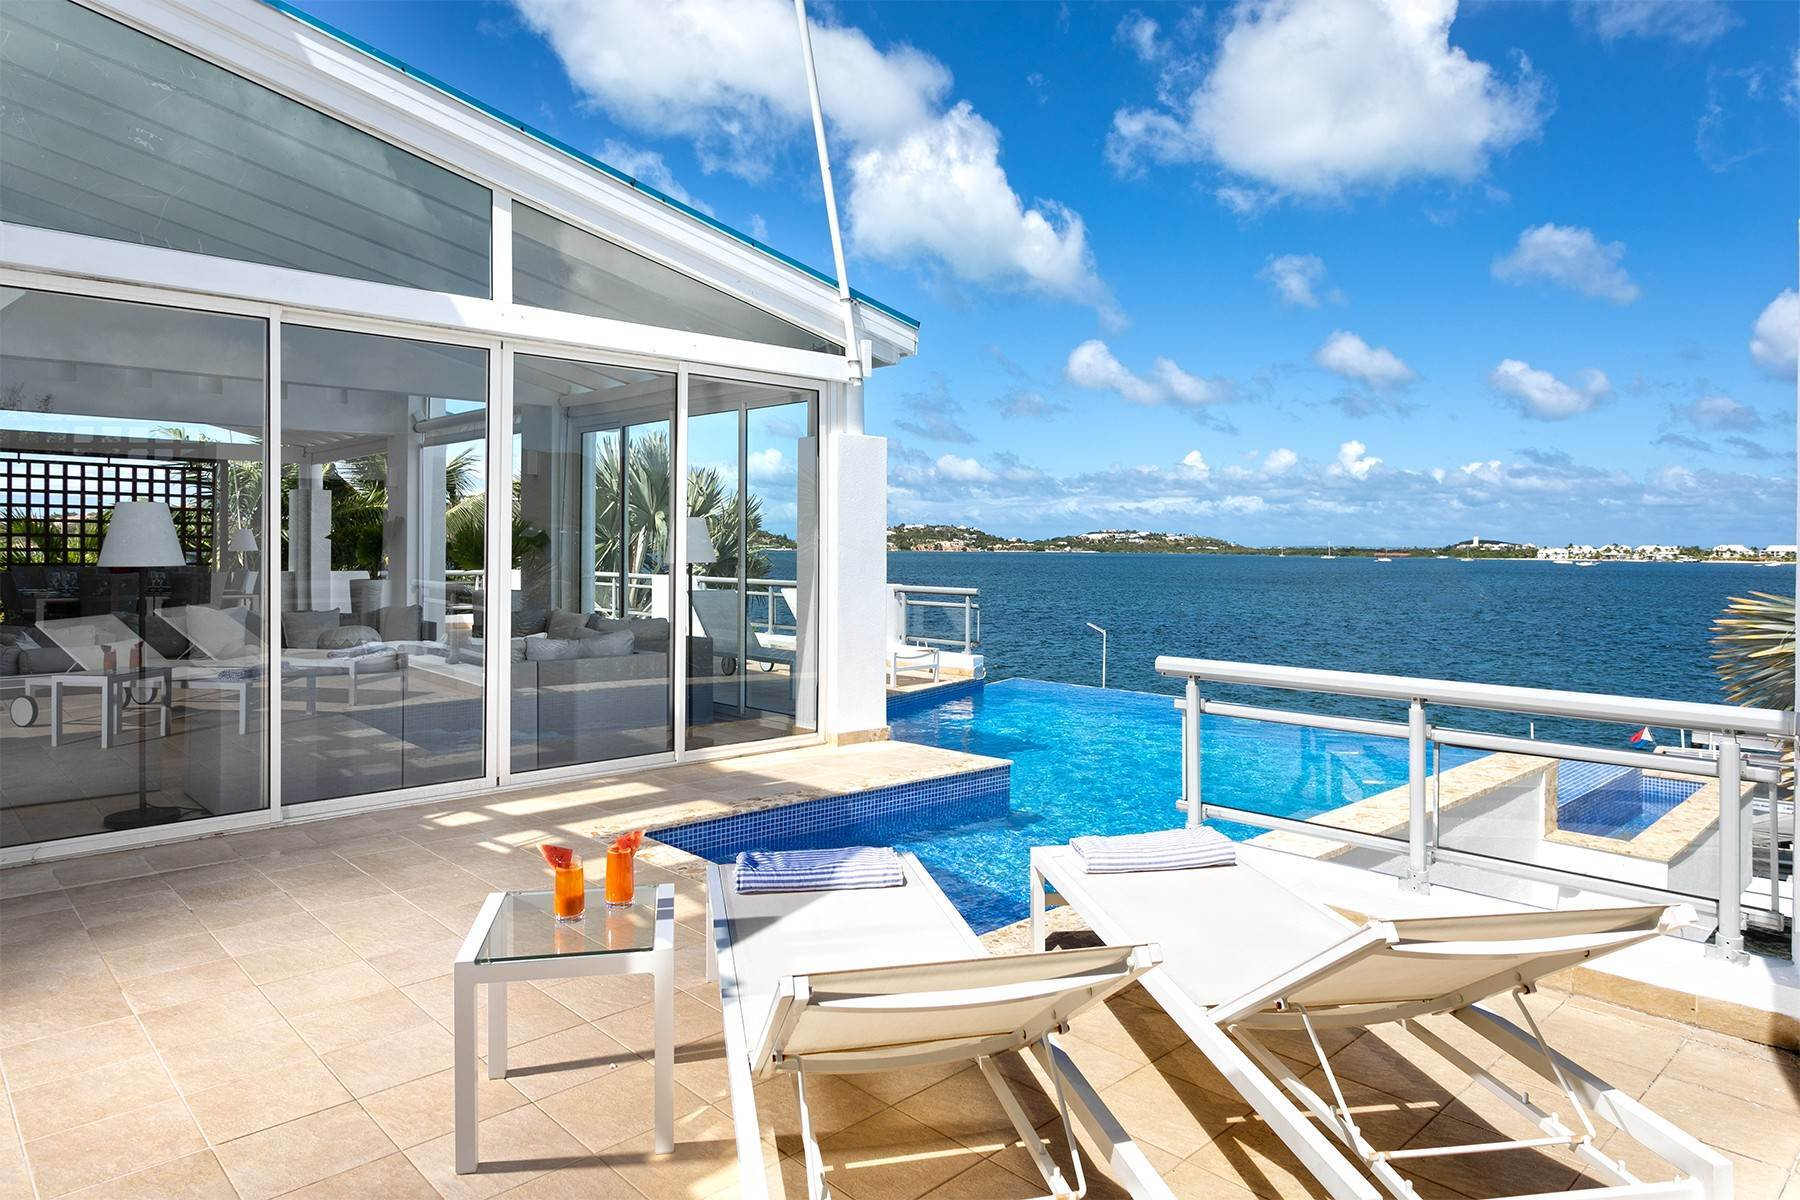 Single Family Homes at Allegra Pointe Pirouette, St. Maarten